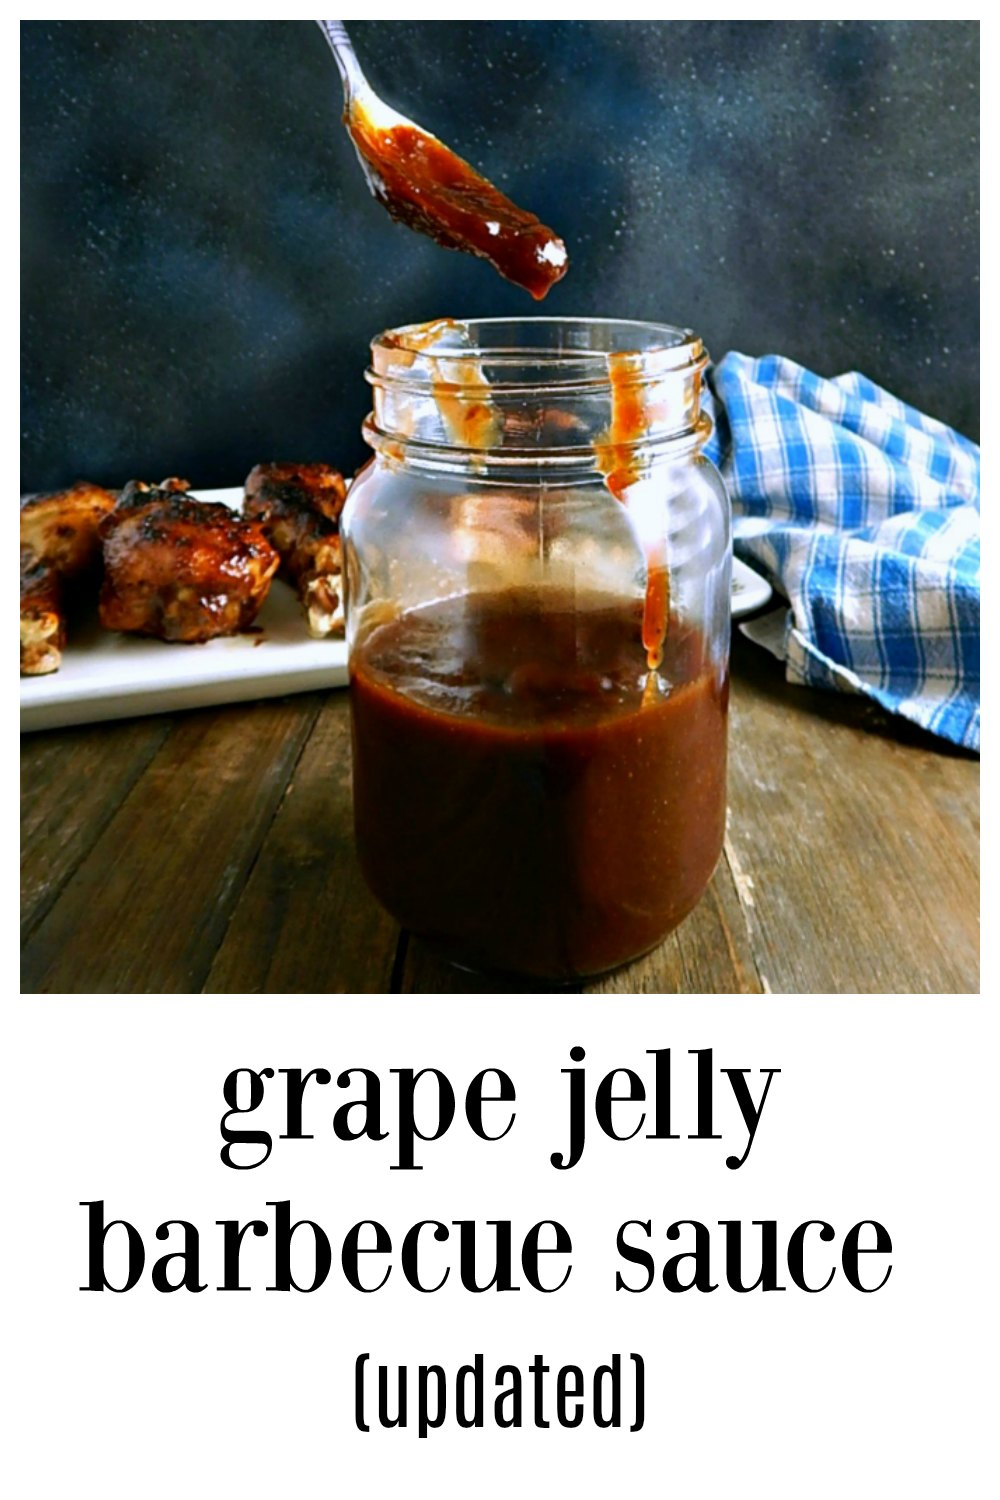 There's a reason this oddity of a recipe, Easy Grape Jelly Barbecue Sauce has stood the test of time...it's insanely delicious! Add a few modern ingredients and It's even better. #GrapeJellyBarbecueSauce #GrapeJellyHeinzChiliSauceBarbecueSauce #ChiliSauceGrapeJellyBarbecueSauce #BarbecueSauce